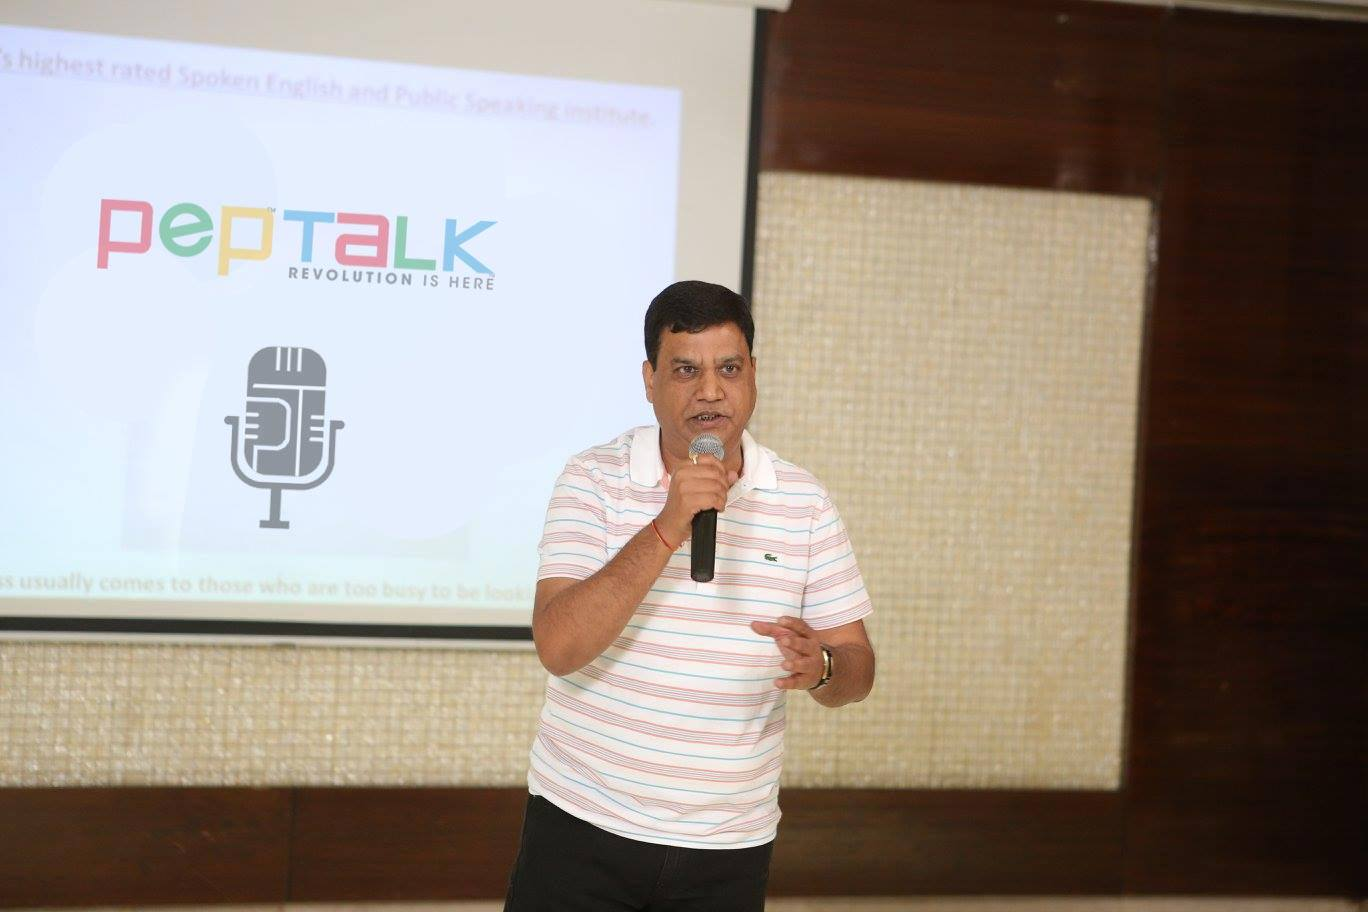 Mr. Ramesh Gupta is a businessman who always somehow finds time to be the part of Pep Talk India